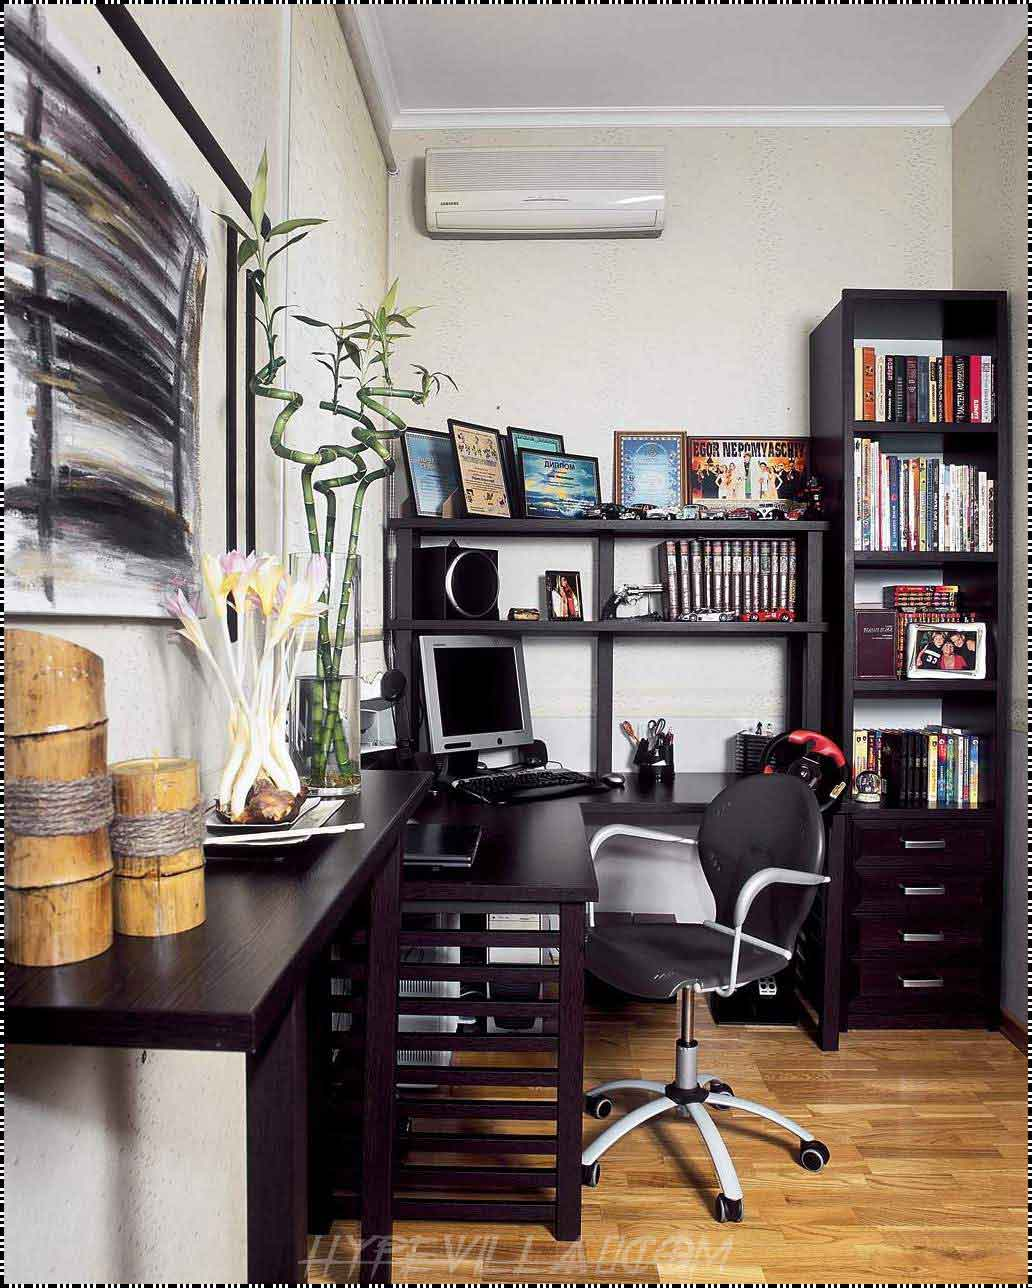 Modern Study Room Interior Design With Black Furniture